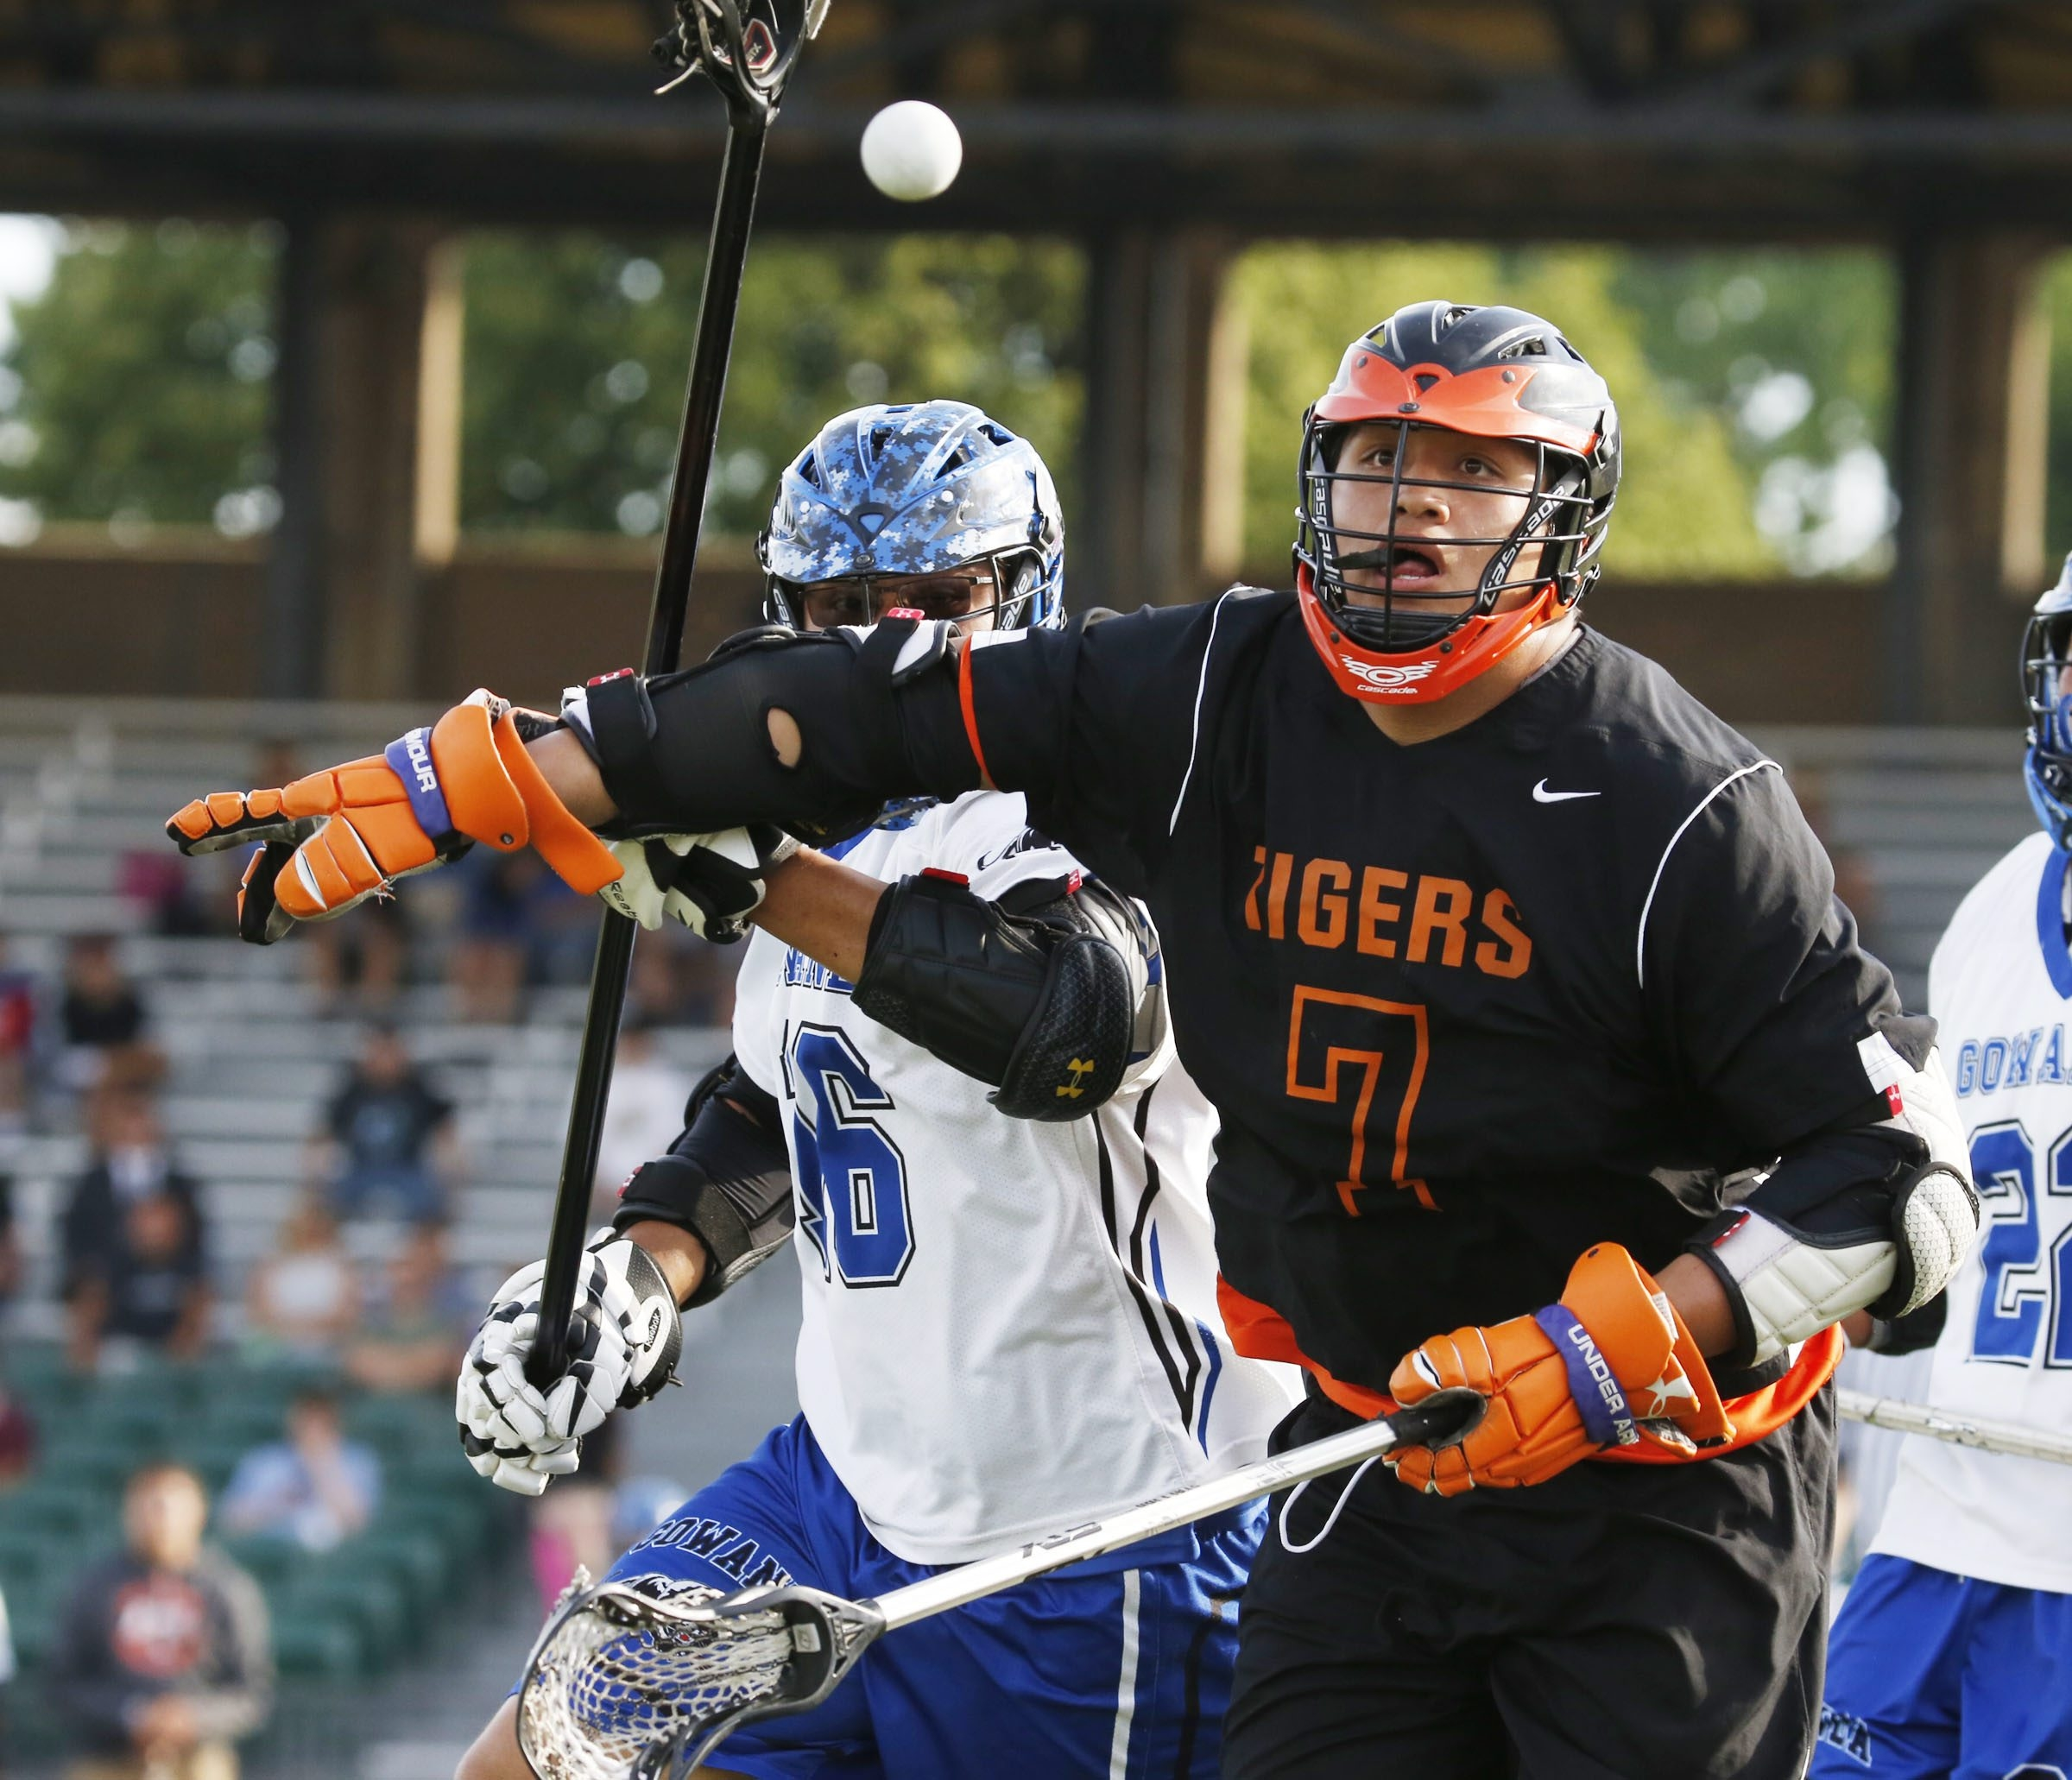 Gate Abrams helped Akron win its third consecutive Class C championship. Abrams, a U.S. Lacrosse All-American, finished his career with 400-plus goals.